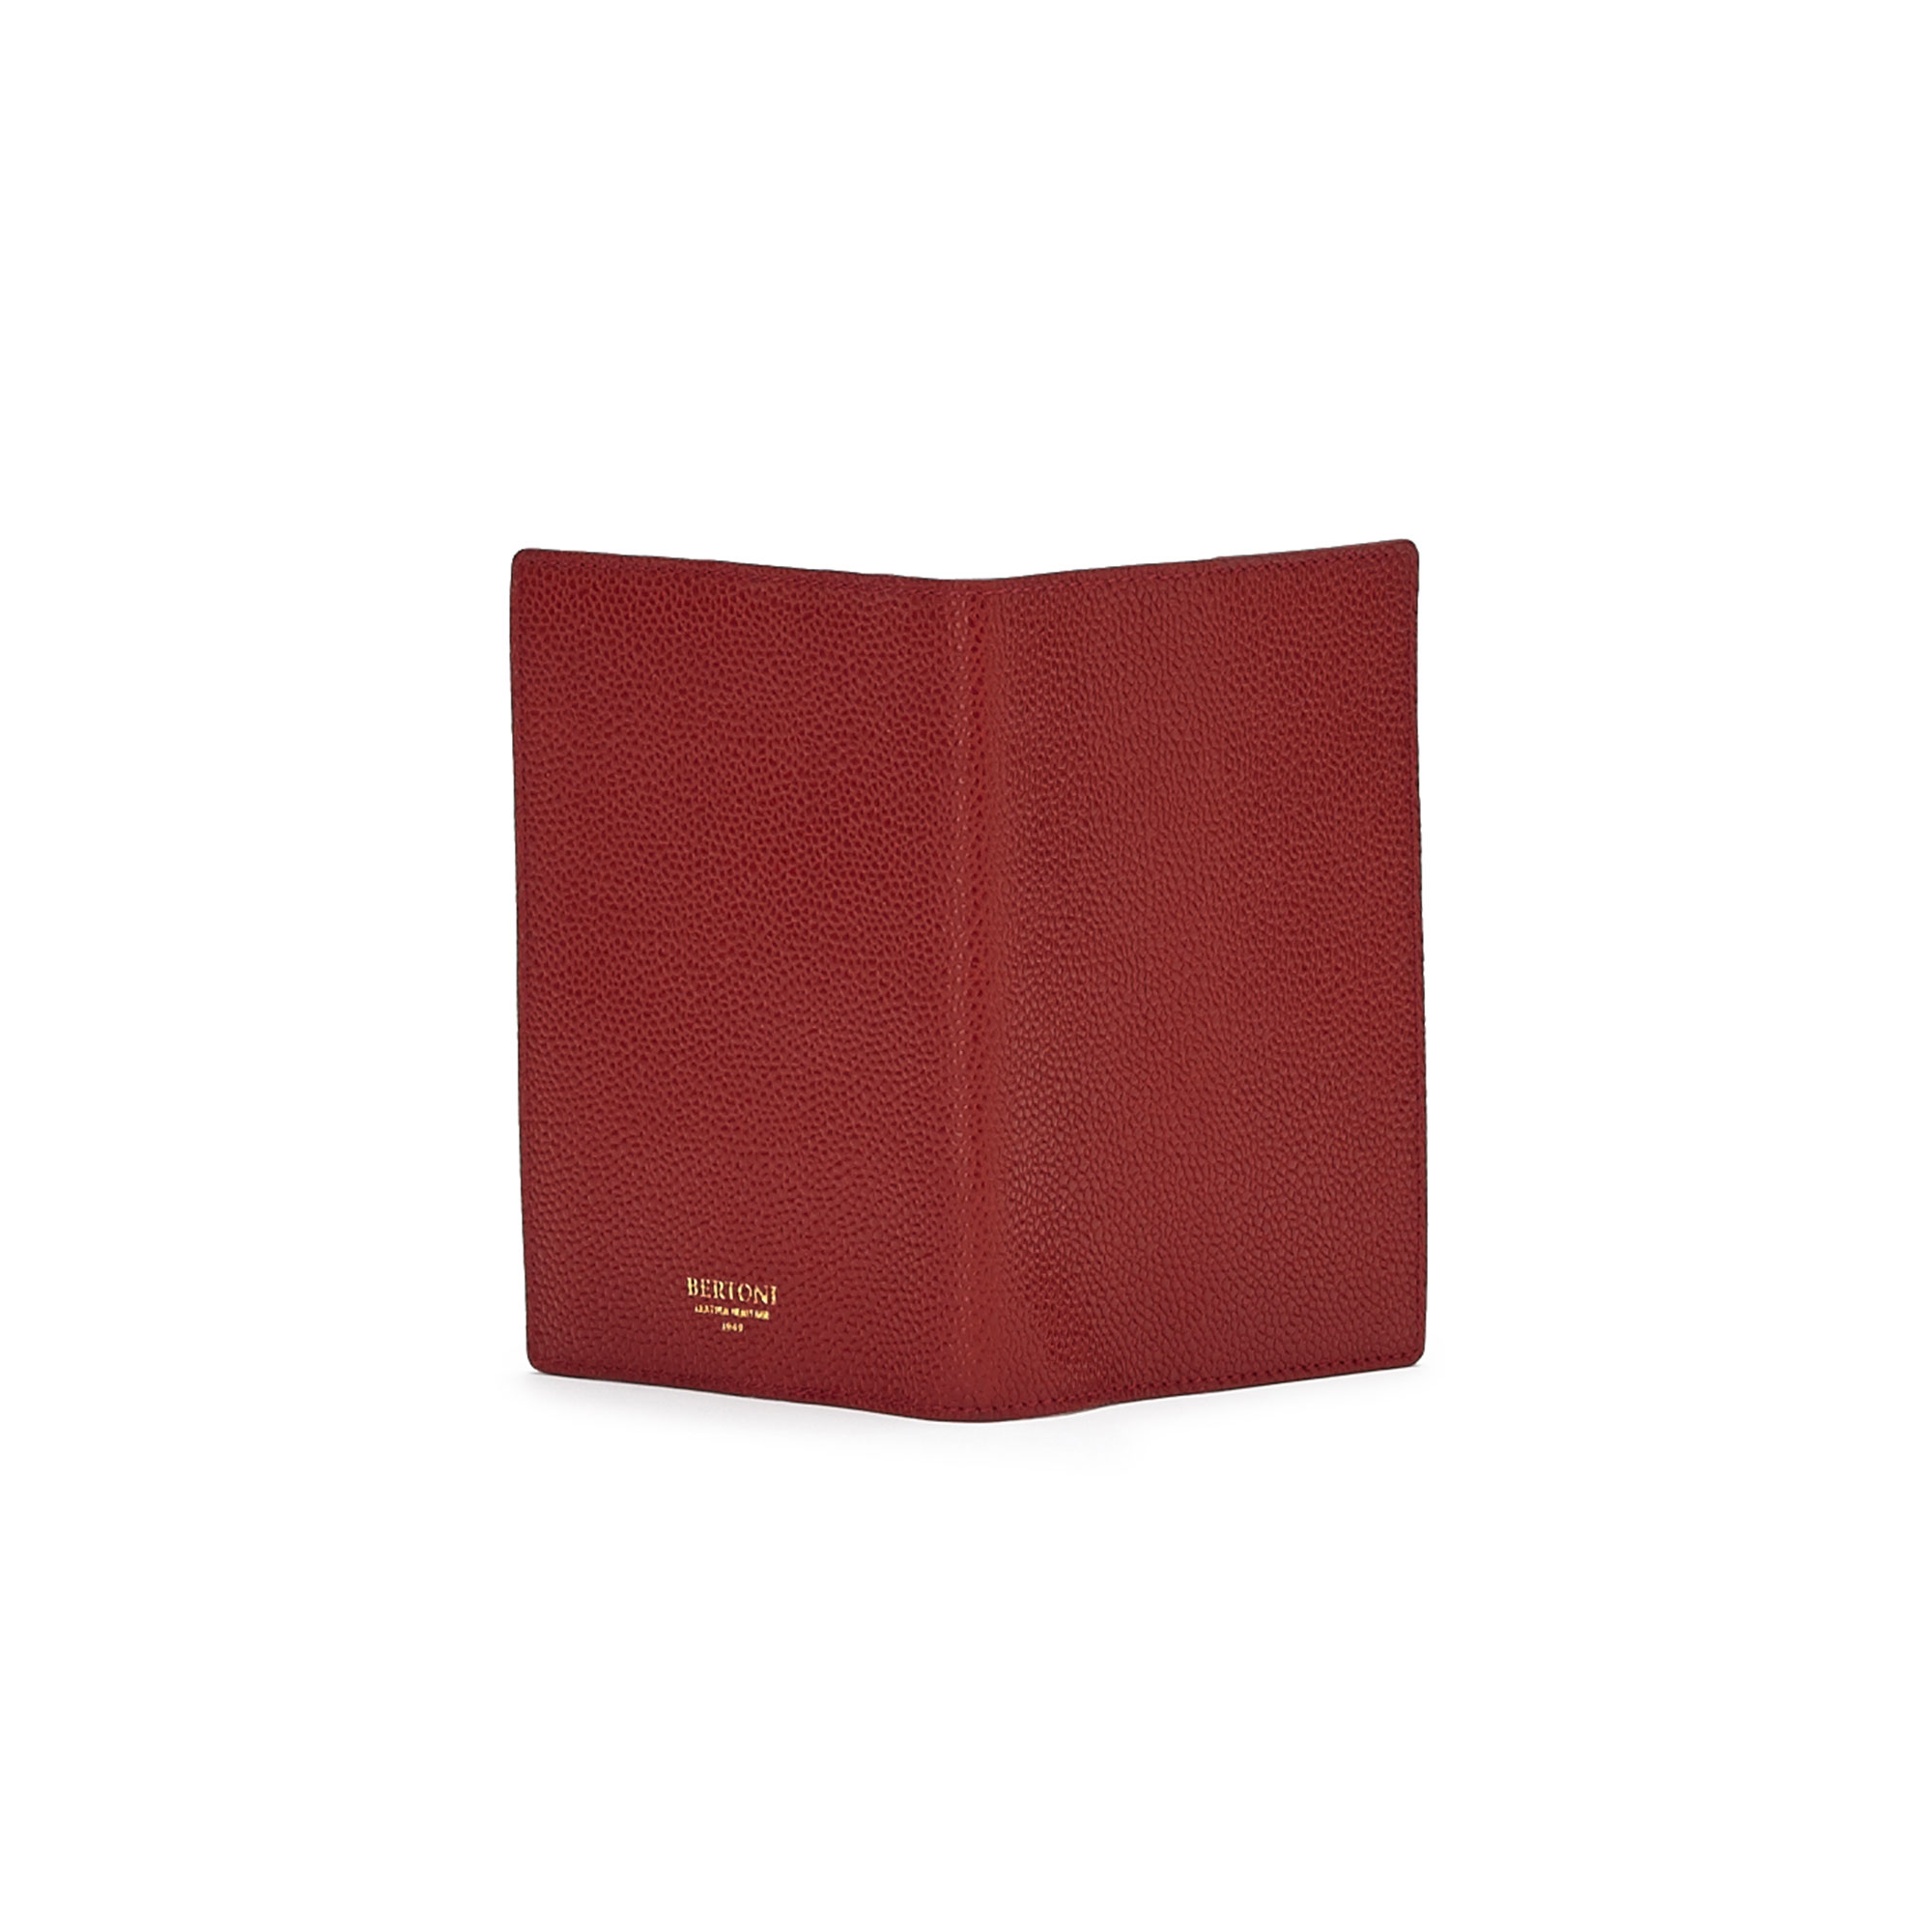 The red grain calf Passport Case by Bertoni 1949 03